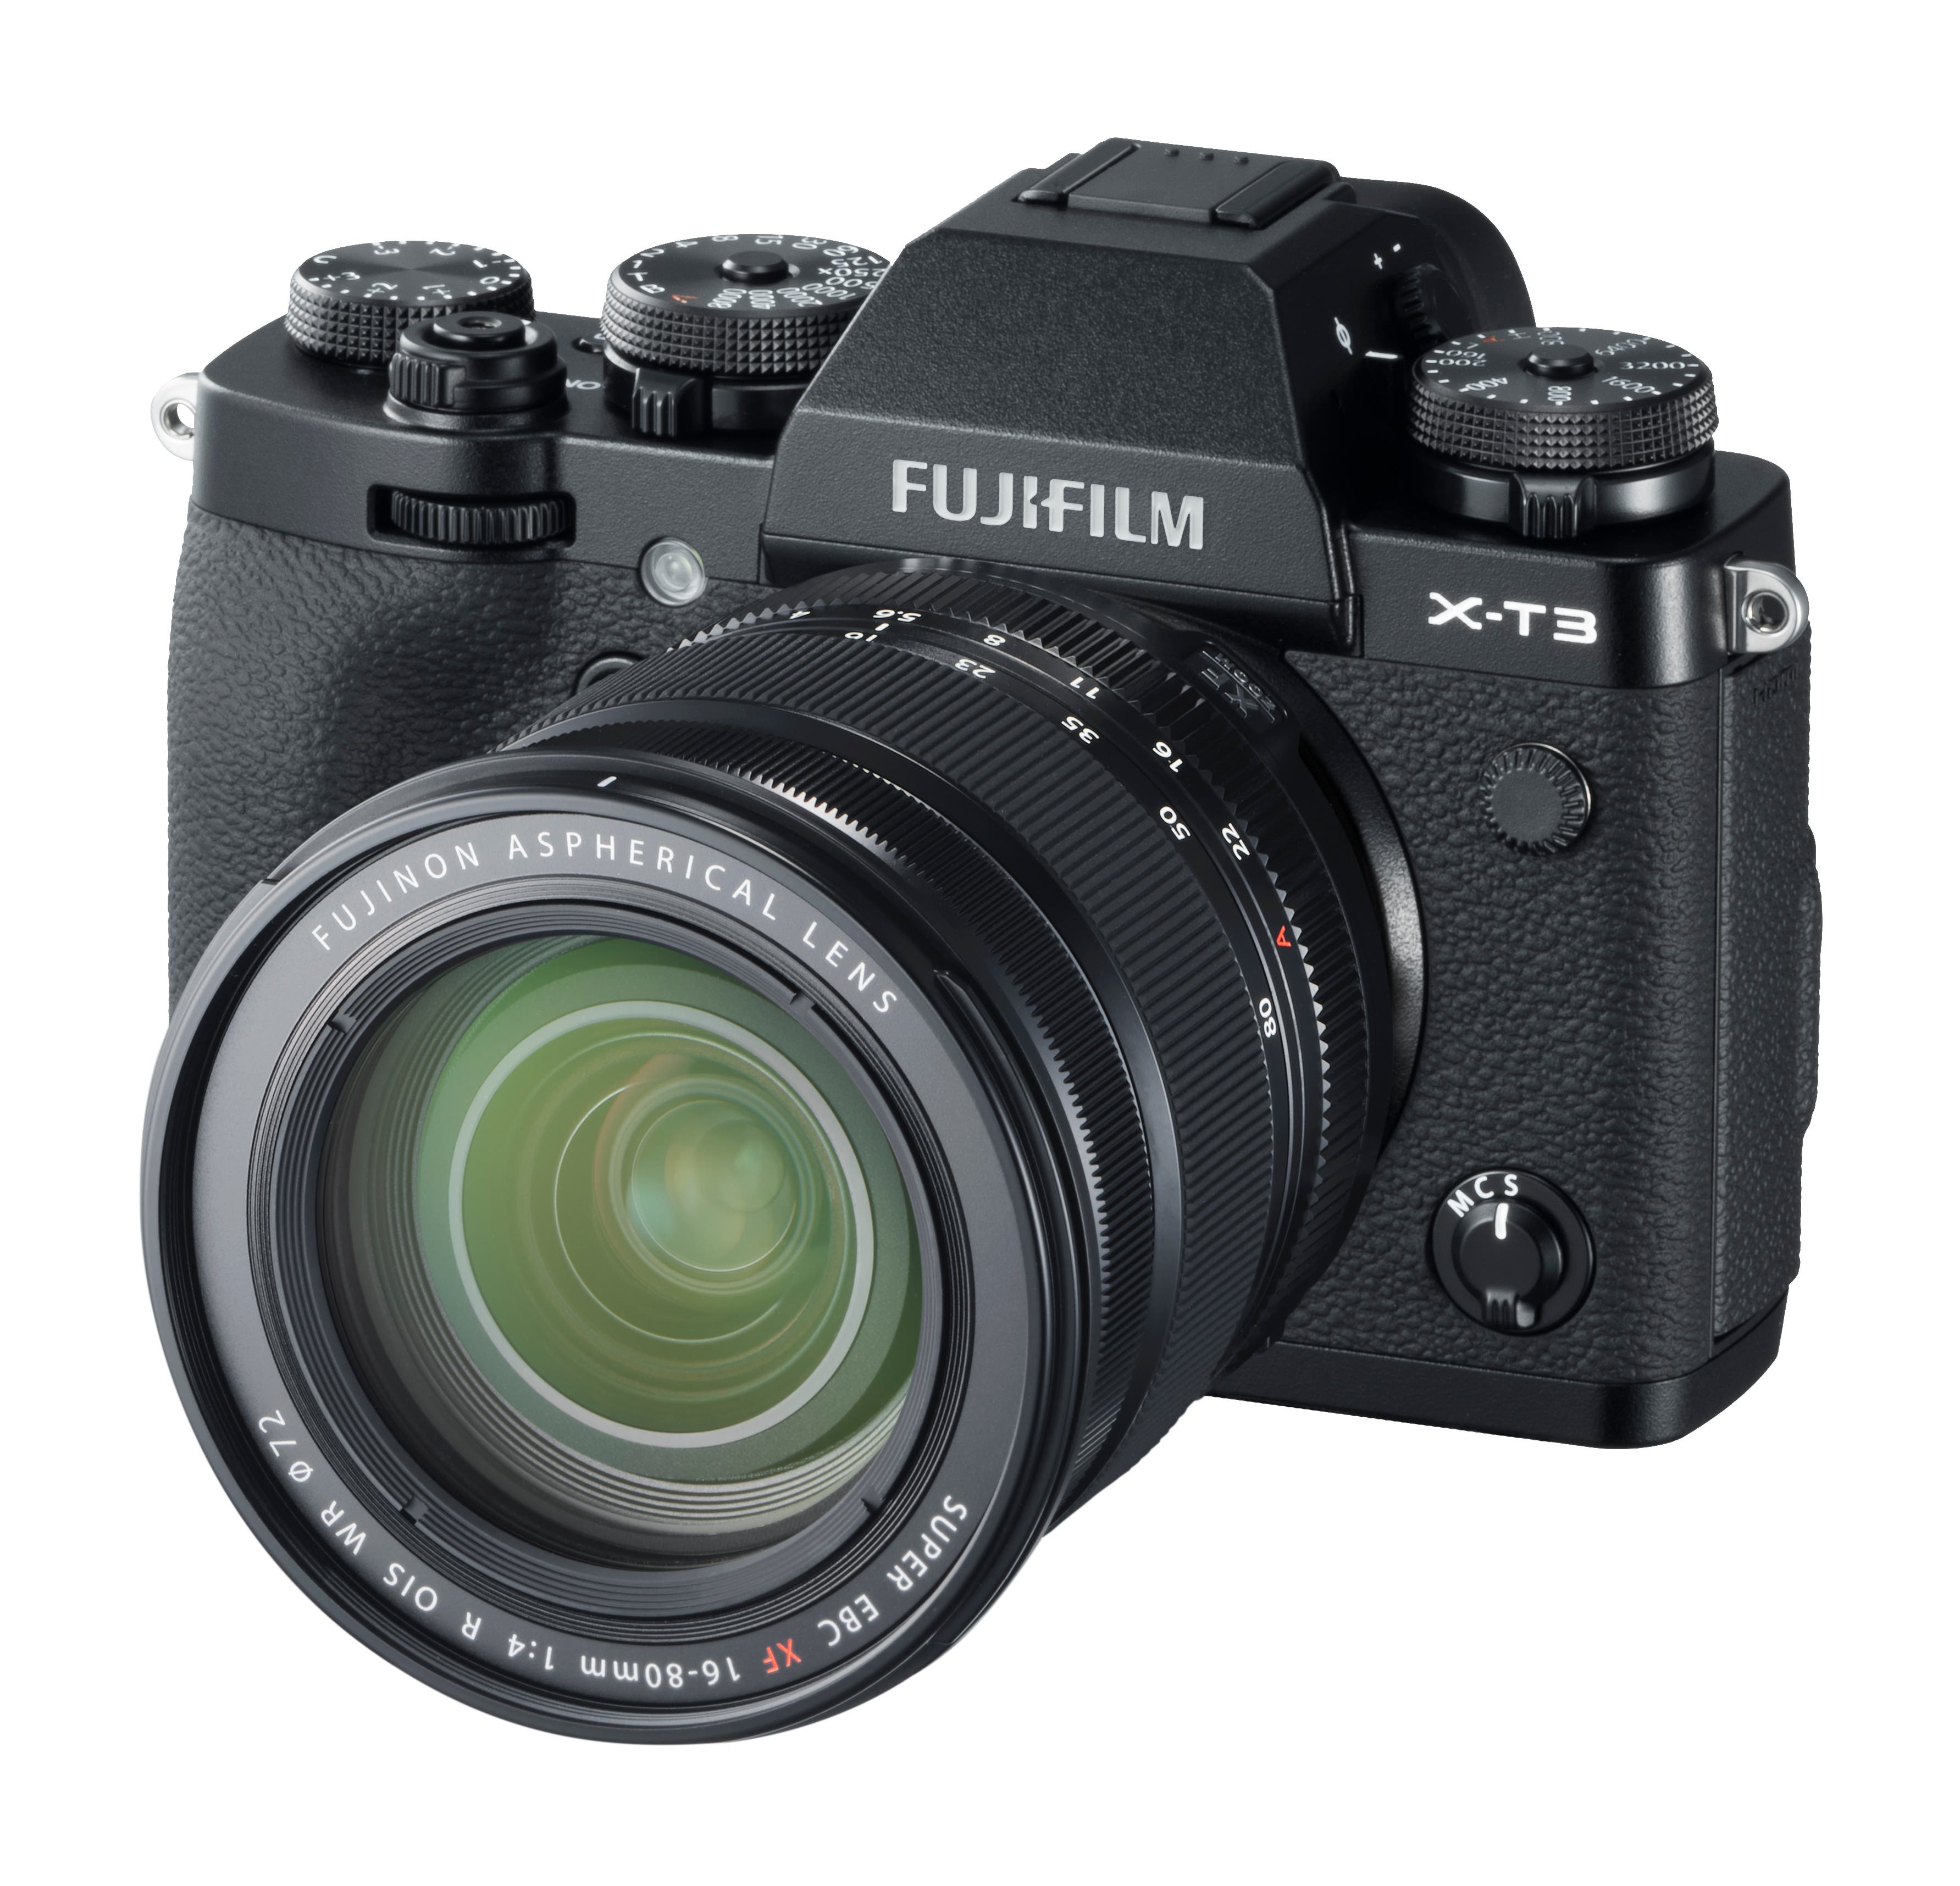 The GF50mm F3.5 and XF16-80mm F4 Are Fujifilm's Newest Lenses